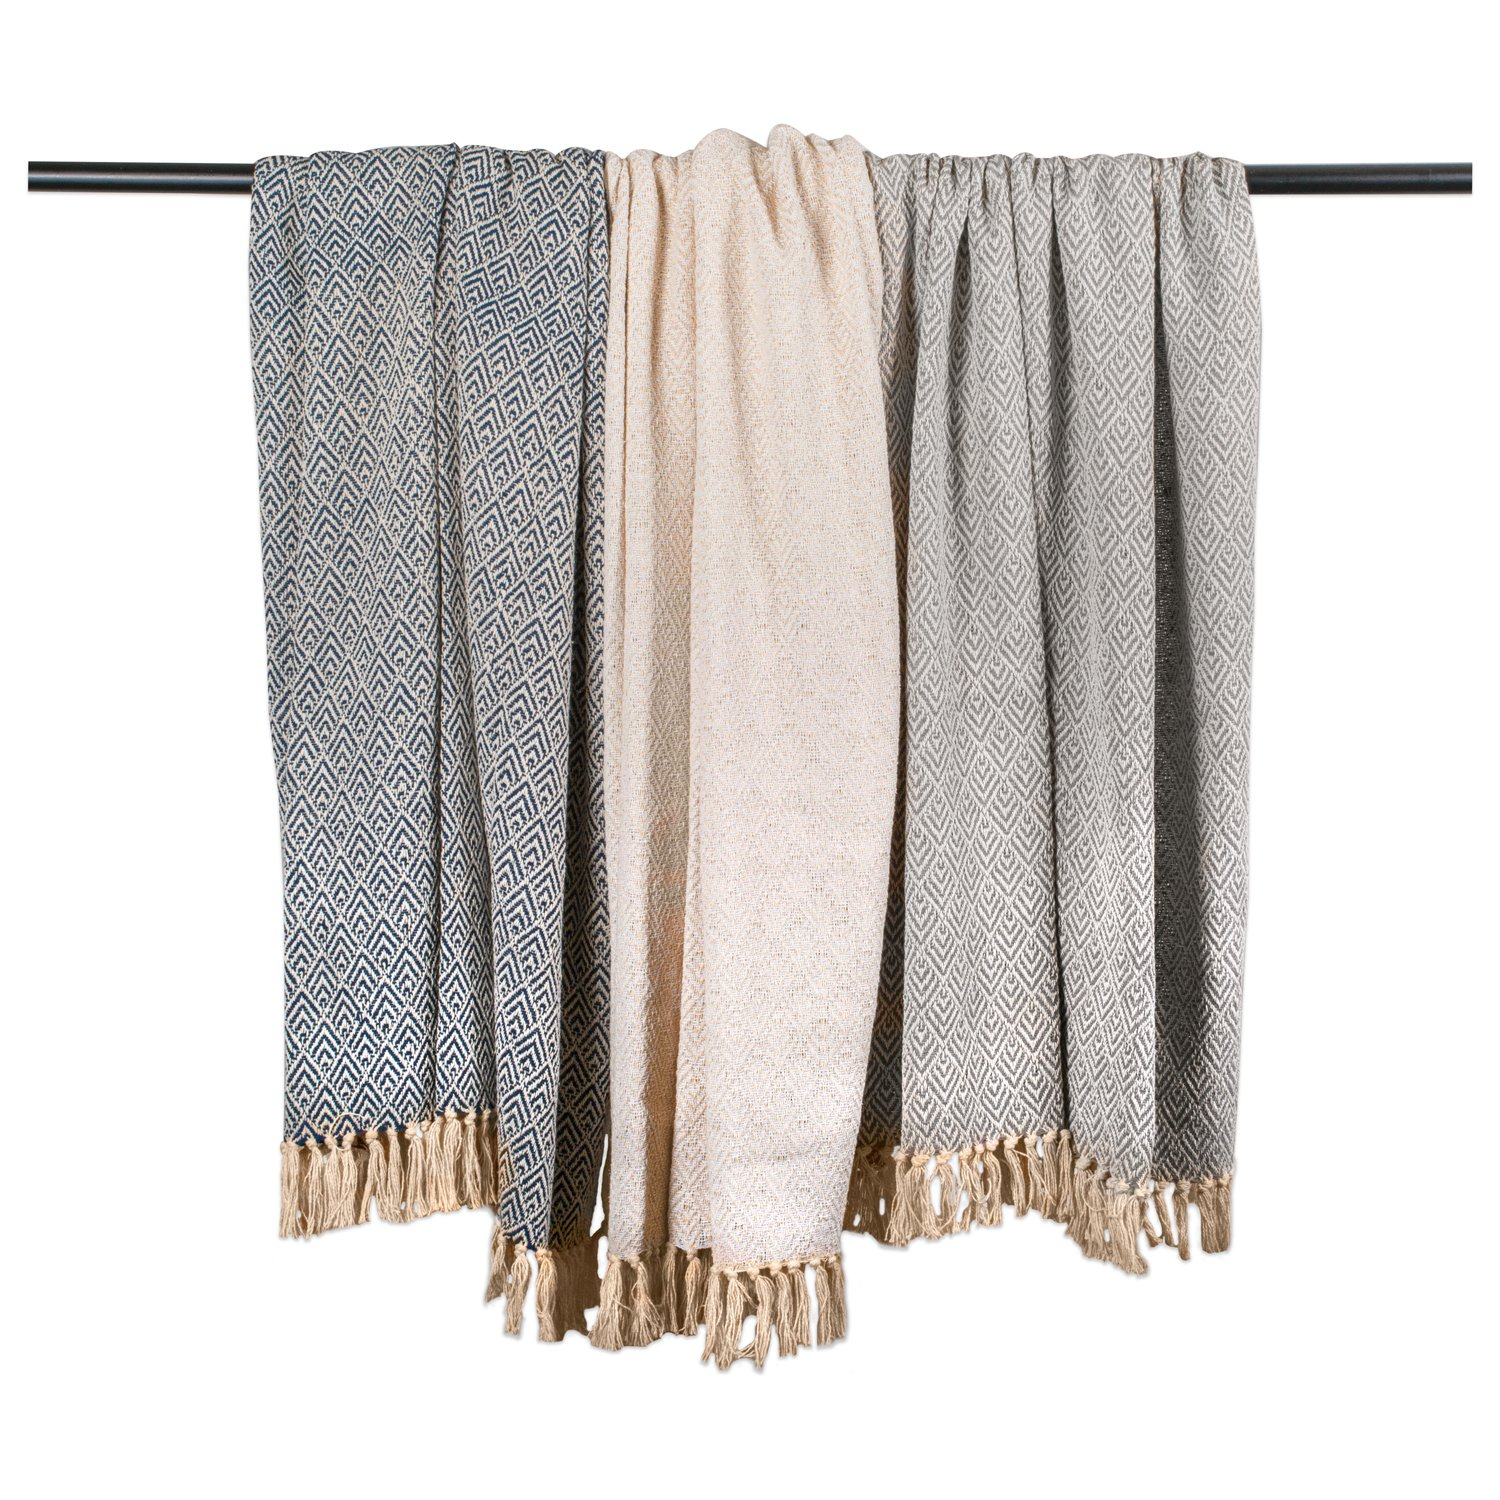 DII Rustic Farmhouse Cotton Diamond Blanket Throw with Fringe for Chair, Couch, Picnic, Camping, Beach, Everyday Use, 50 x 60 - Diamond Gray by DII (Image #5)